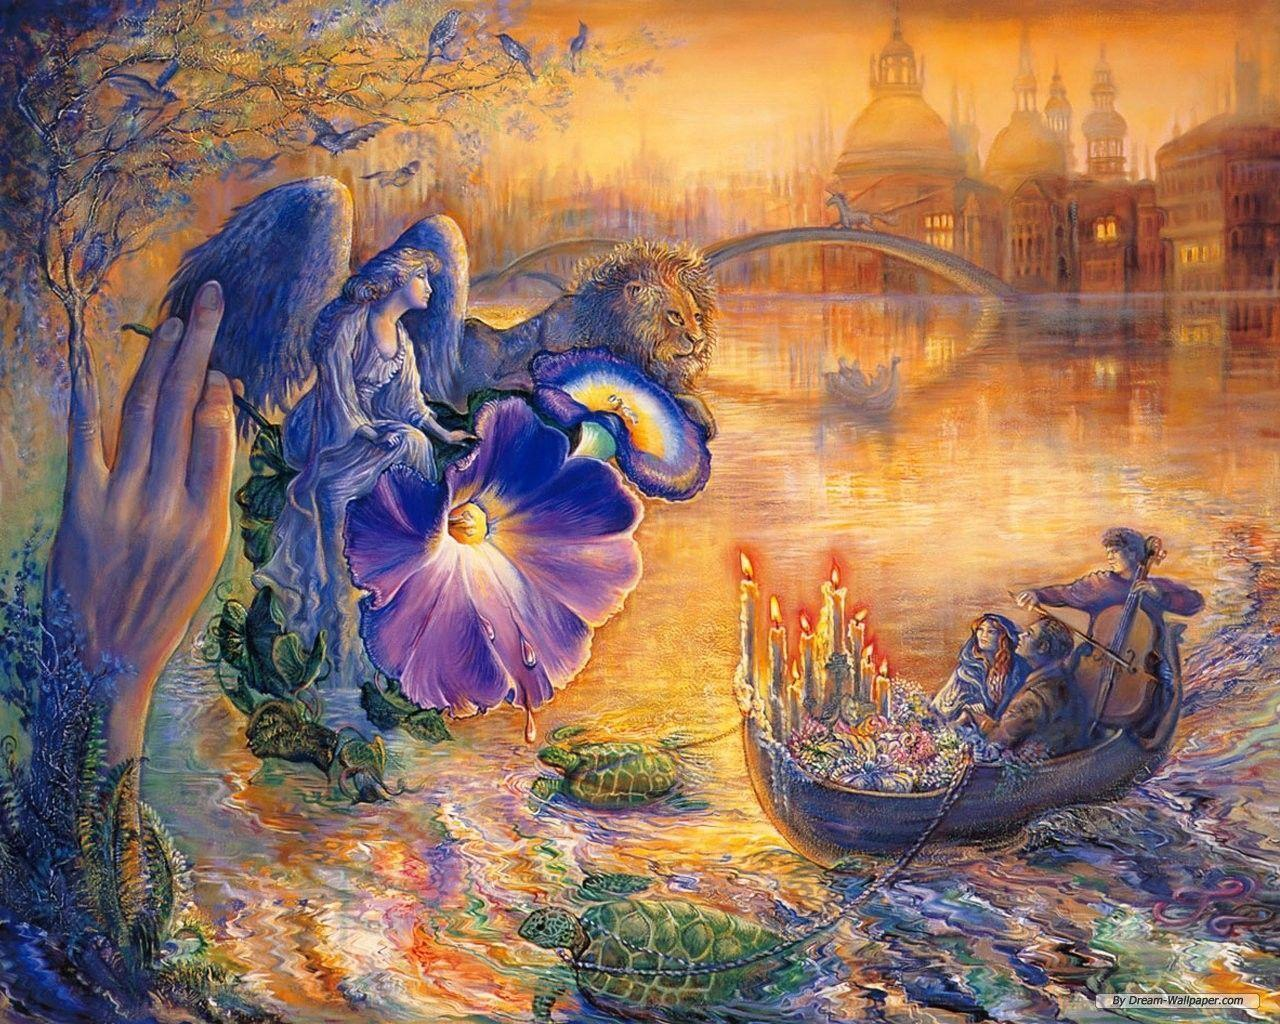 Josephine wall wallpapers wallpaper cave for Wall art wallpaper